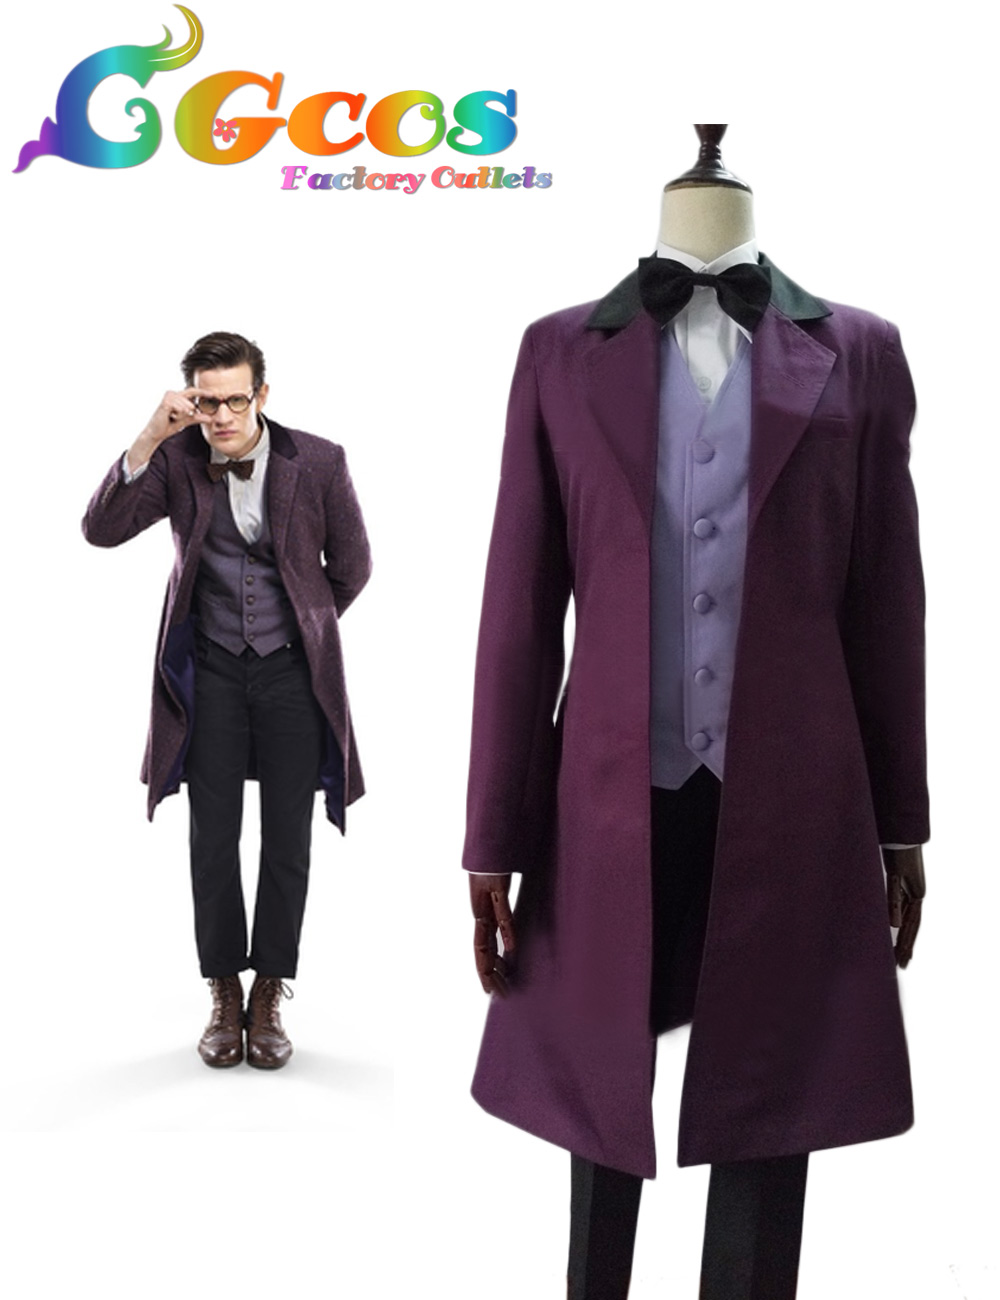 CGCOS Free Shipping Cosplay Costume Doctor Who Suit Full Set Uniform New in Stock Halloween Christmas Party cgcos free shipping cosplay costume hetalia axis powers scotland uniform new in stock halloween christmas party